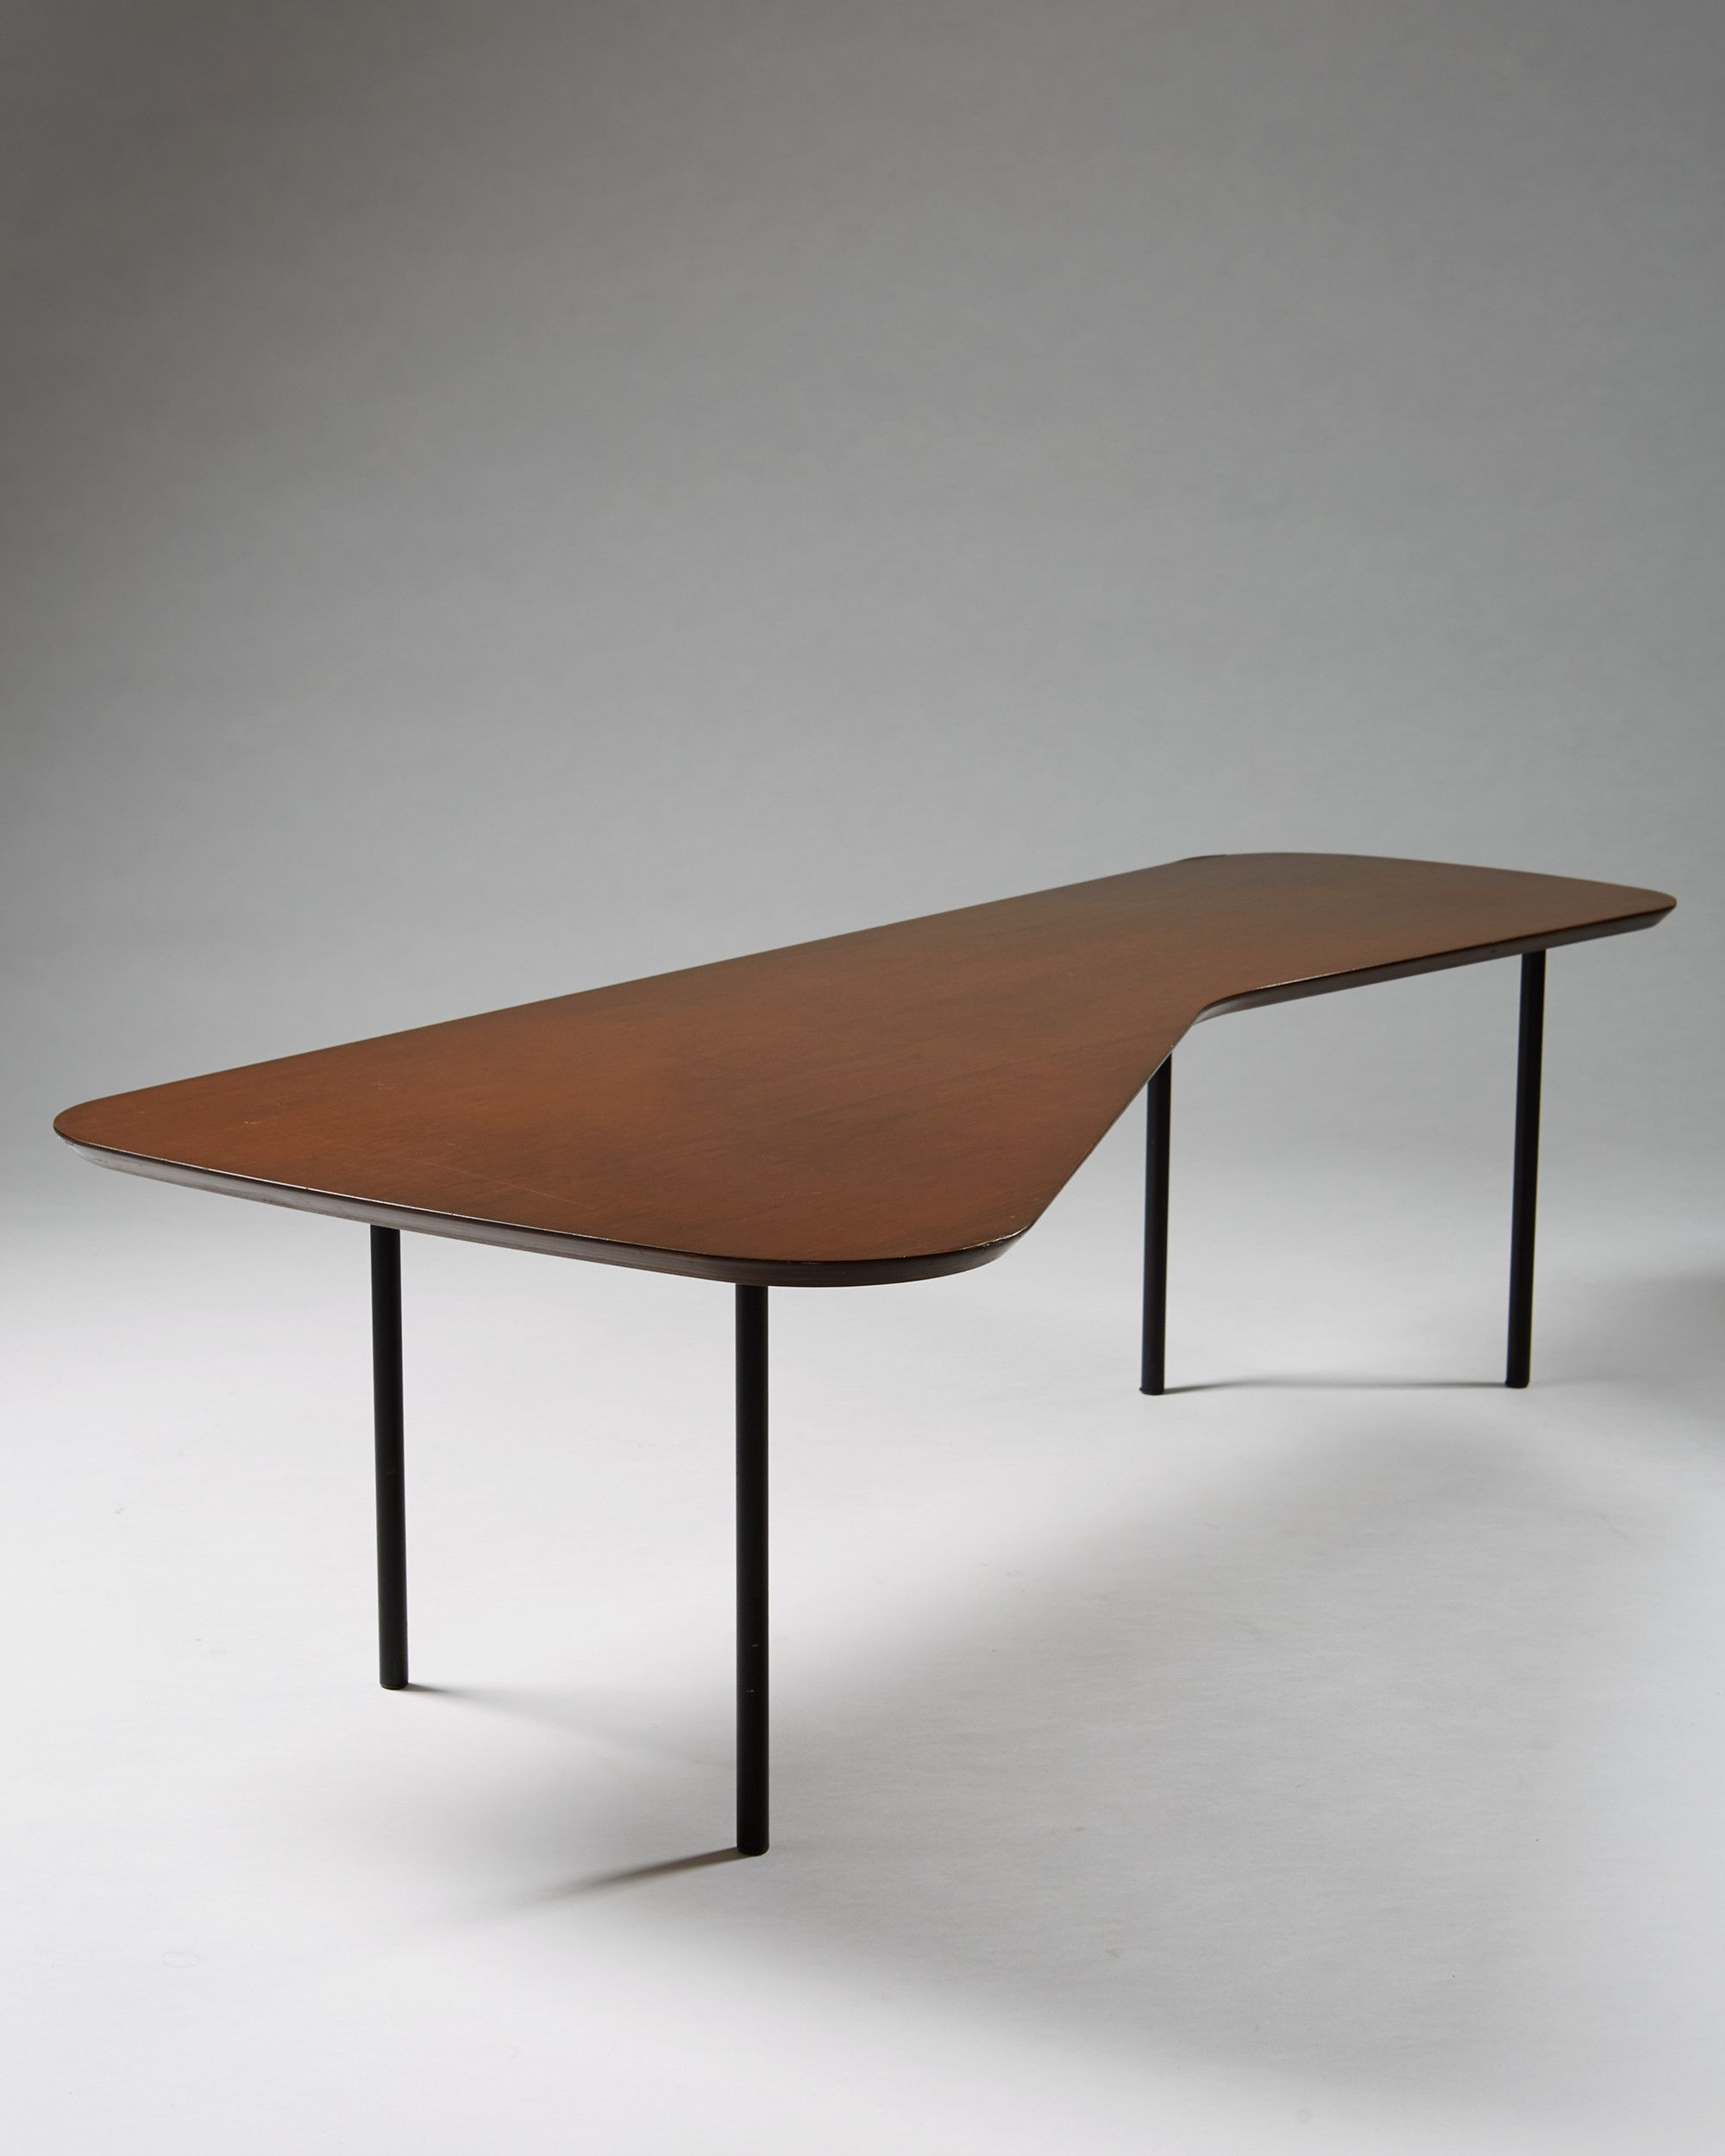 Alexander Girard Walnut Plywood and Enameled Steel Sofa Table for